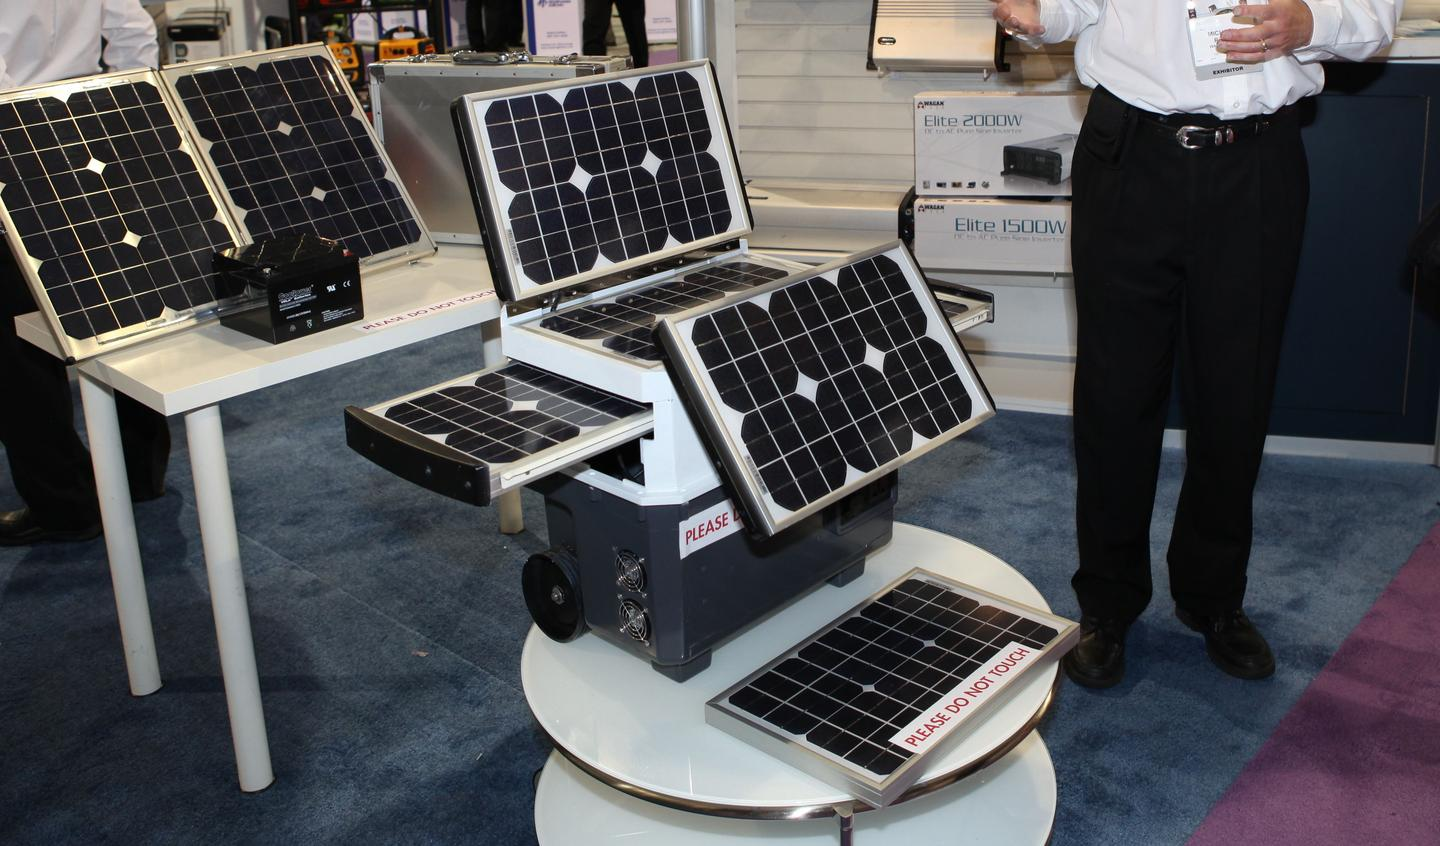 Wagan Tech's five-panel solar-powered generator